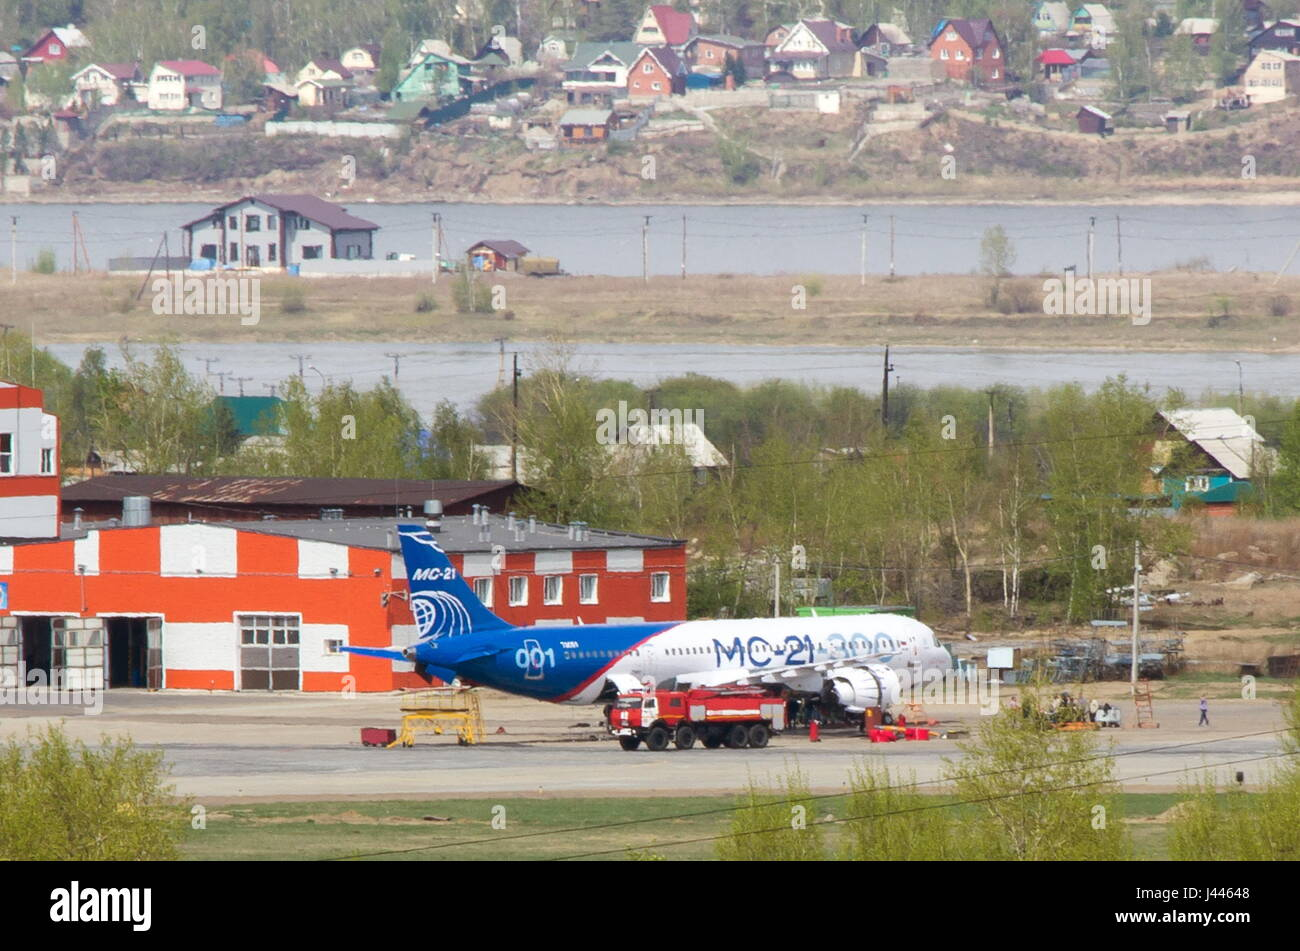 Irkutsk, Russia. 9th May, 2017. The Irkut MC-21 Russian jet airliner wheeled out of a final assembly facility for - Stock Image